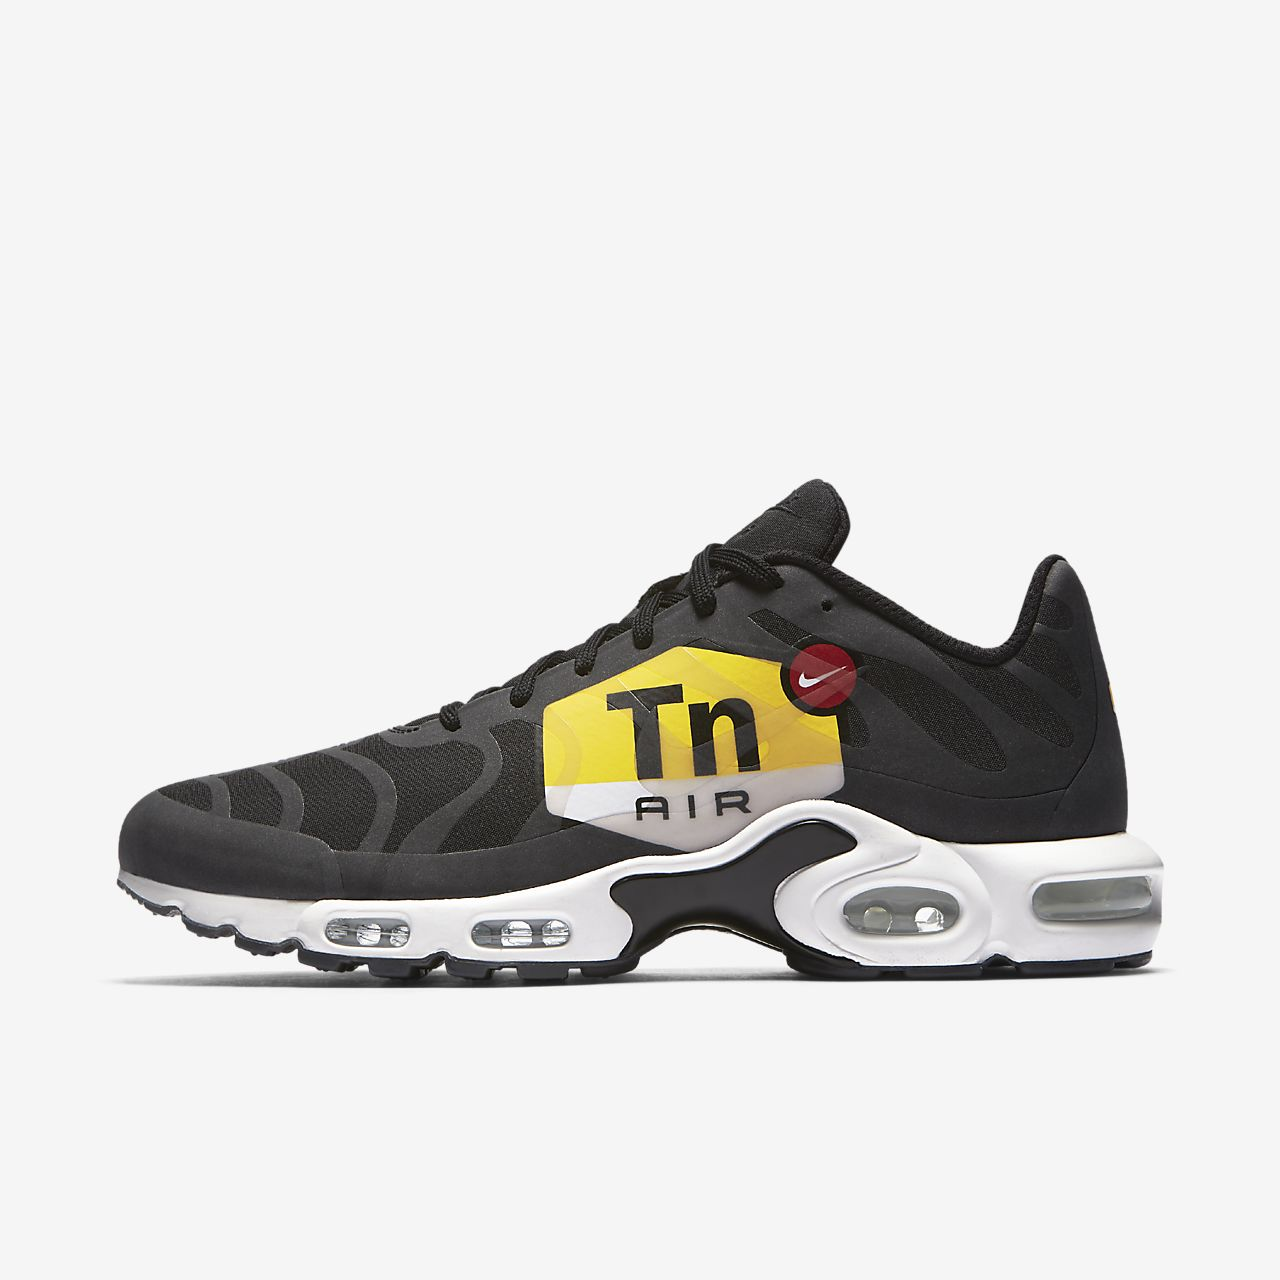 best website 0dd53 49790 nike air max plus prezzi